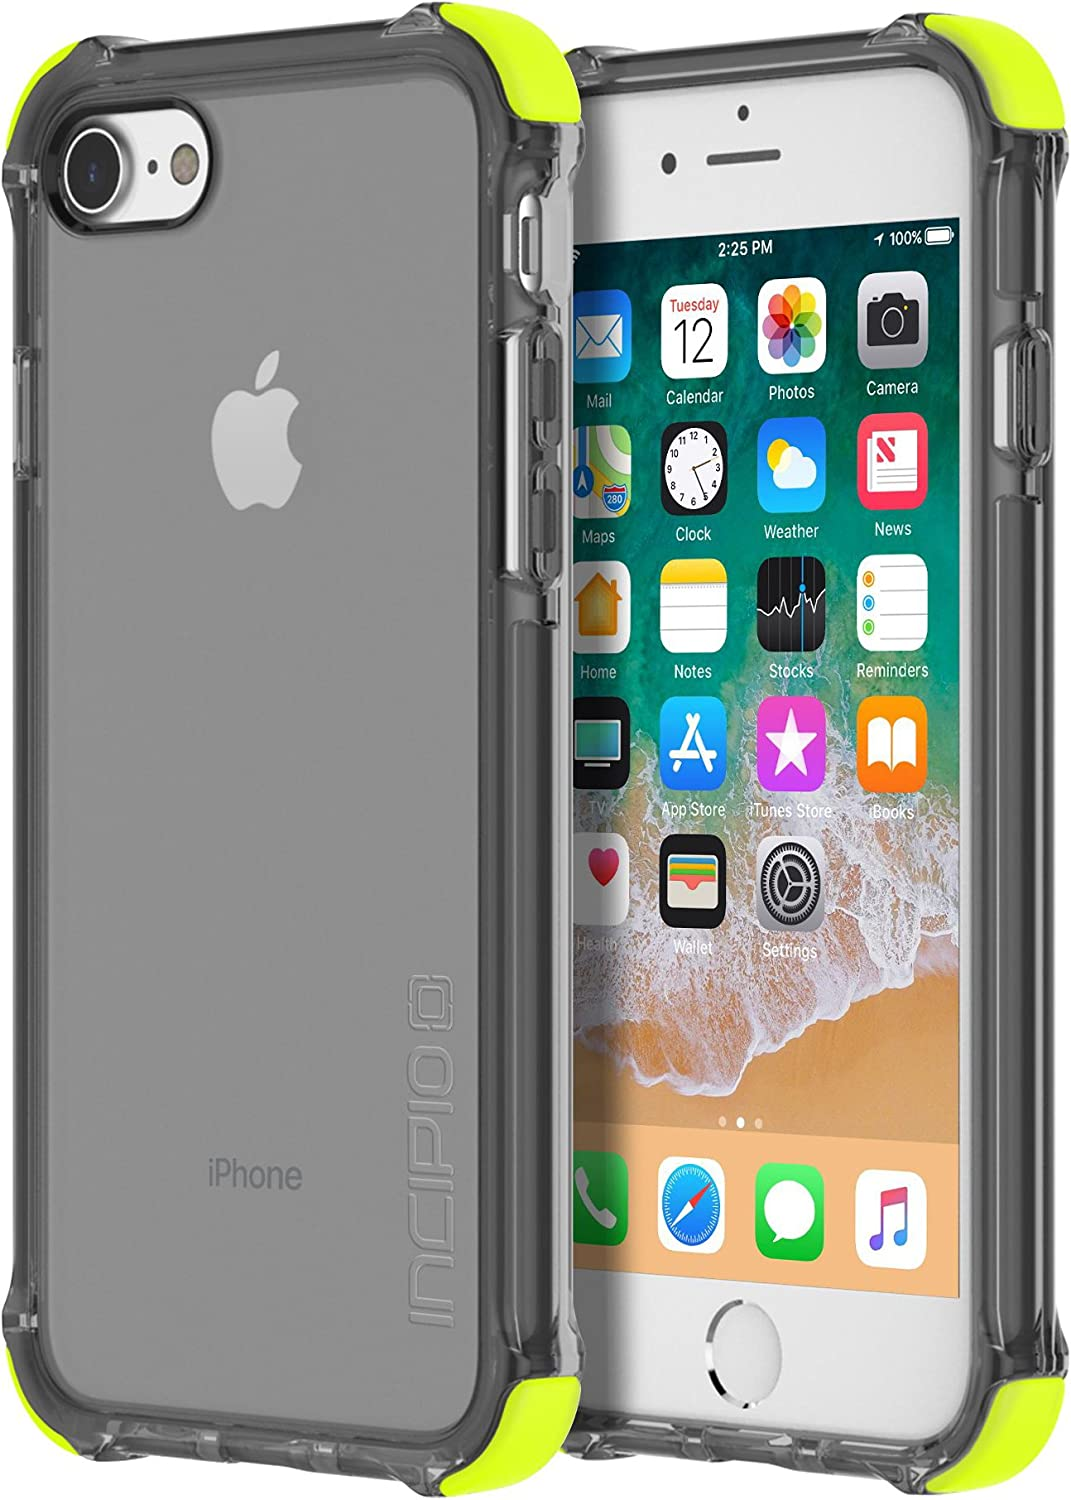 Incipio Reprieve [Sport] iPhone 8 Case with Reinforced Shock-Absorbing Corners for iPhone 8 - Volt/Smoke